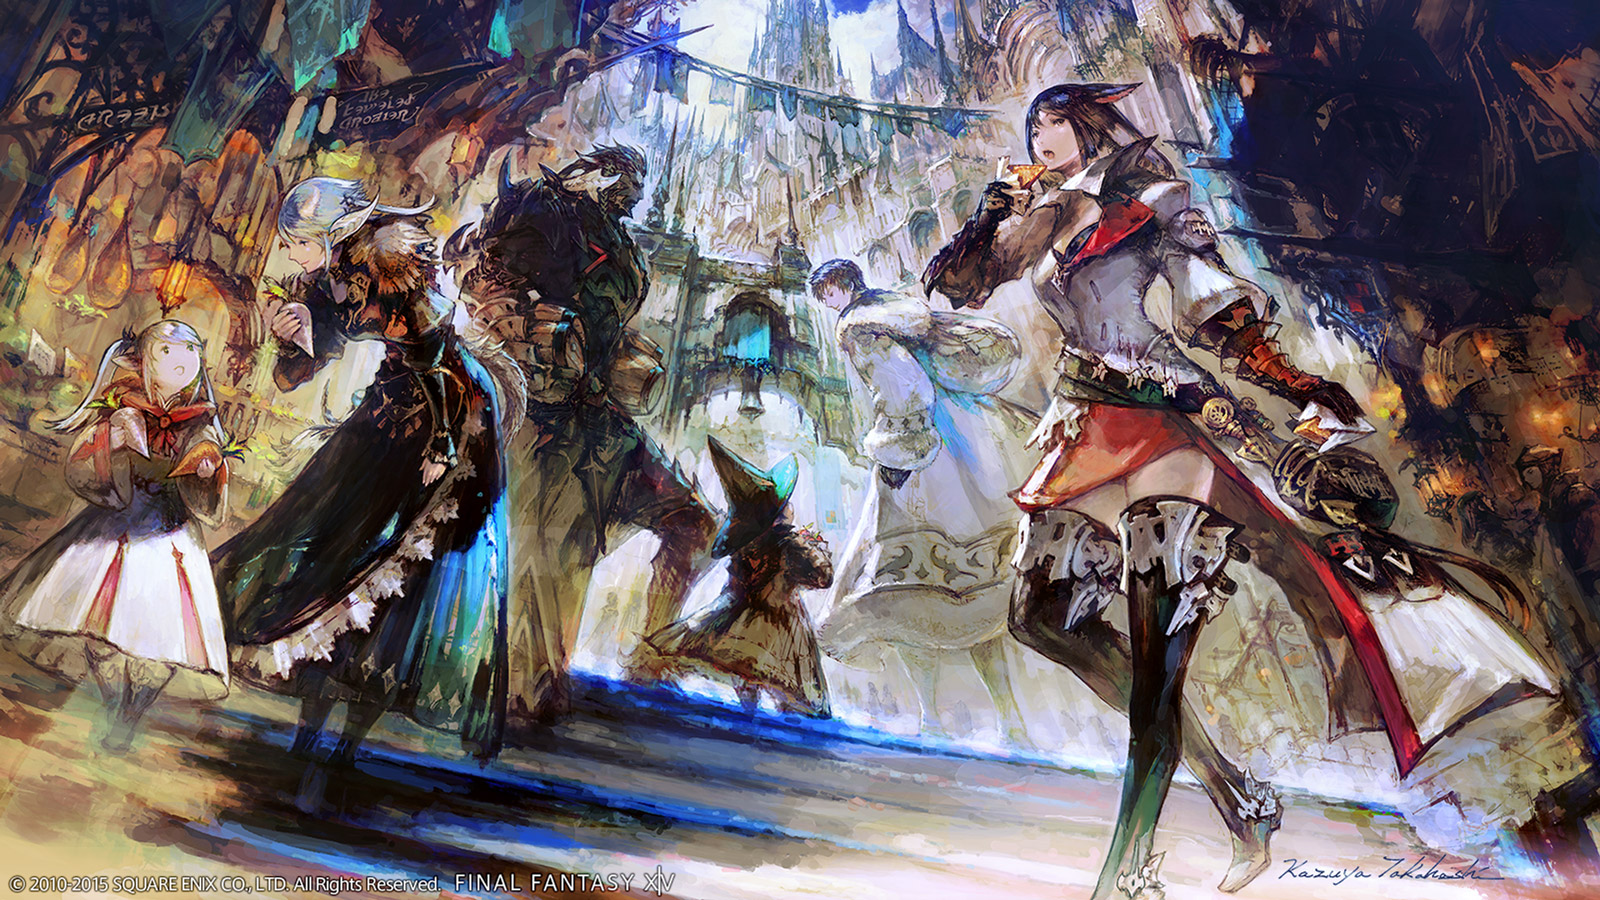 Free Final Fantasy XIV Wallpaper in 1600x900